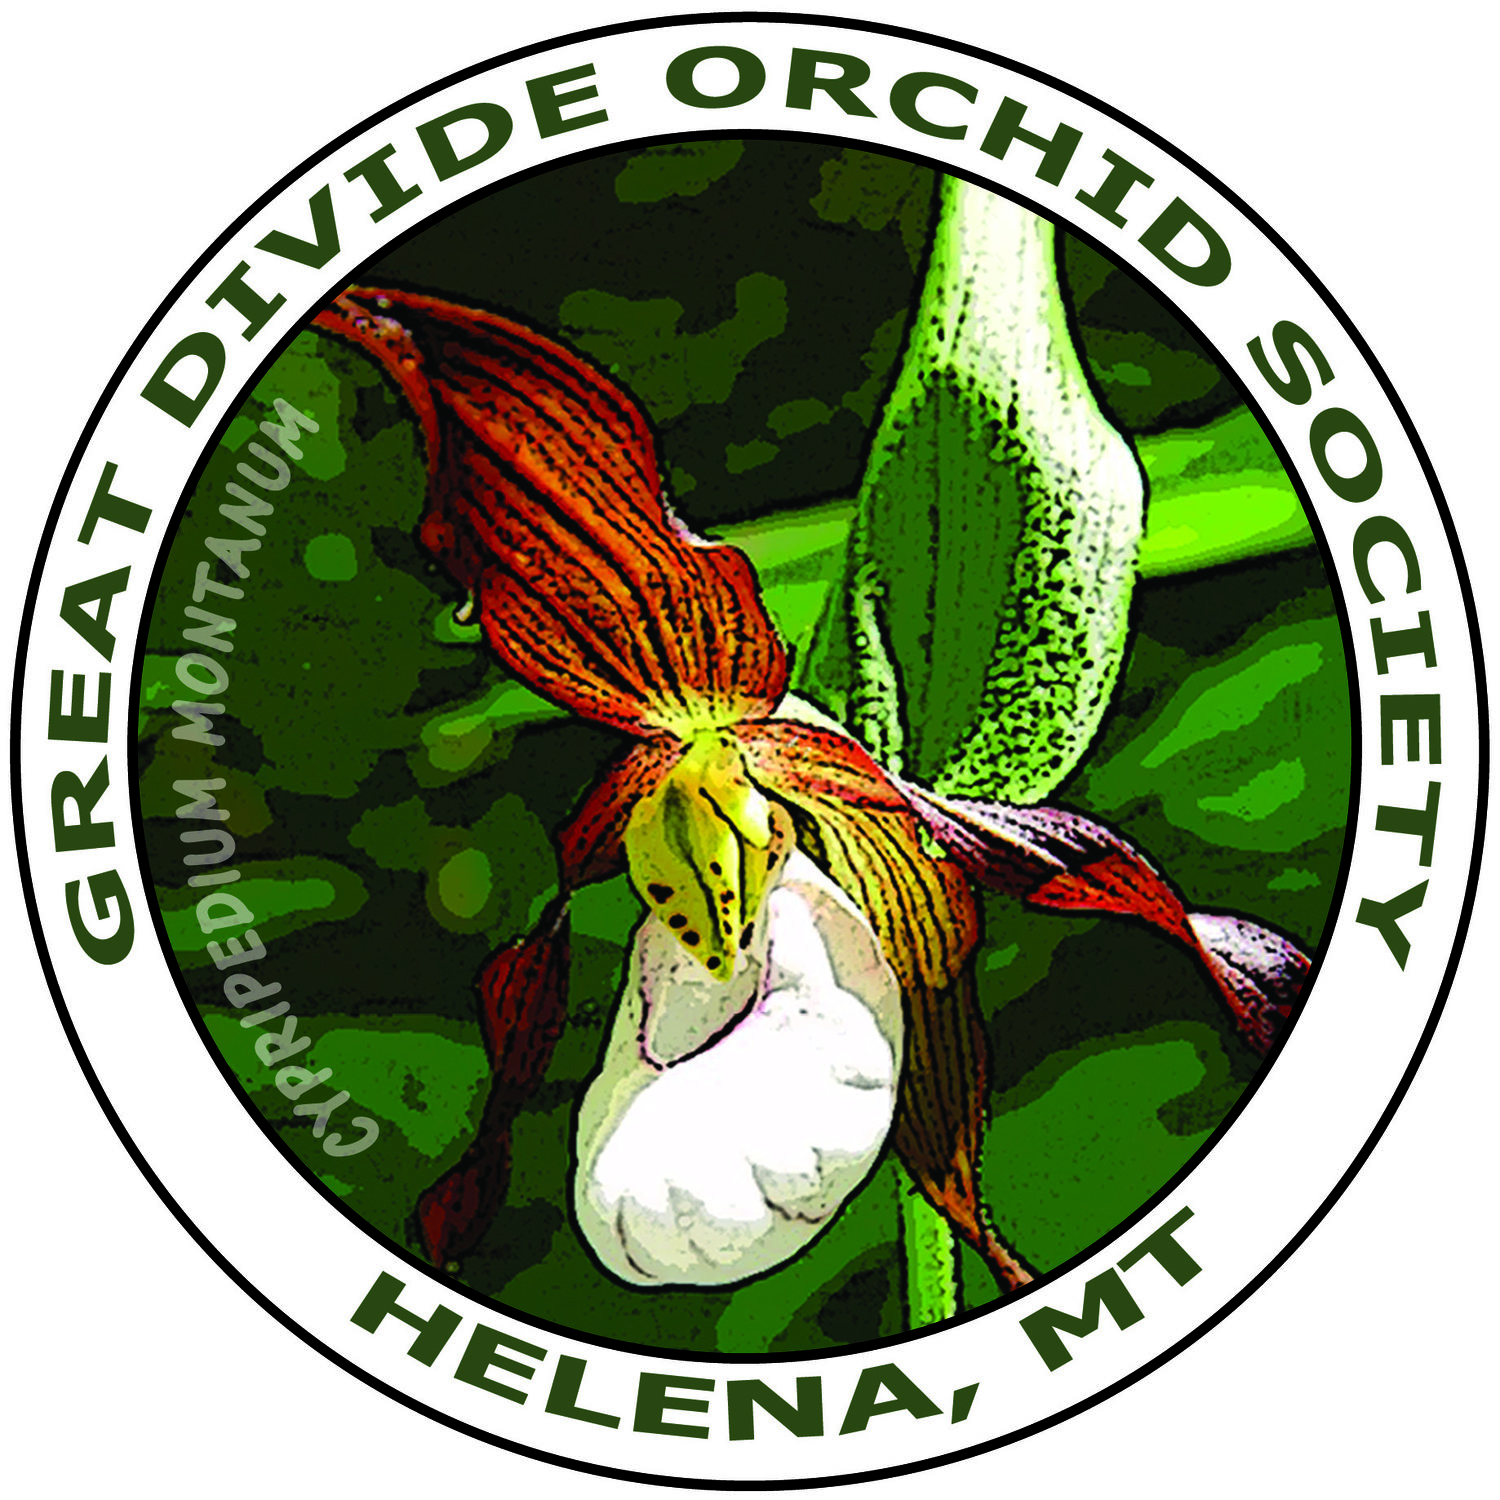 Great Divide Orchid Society